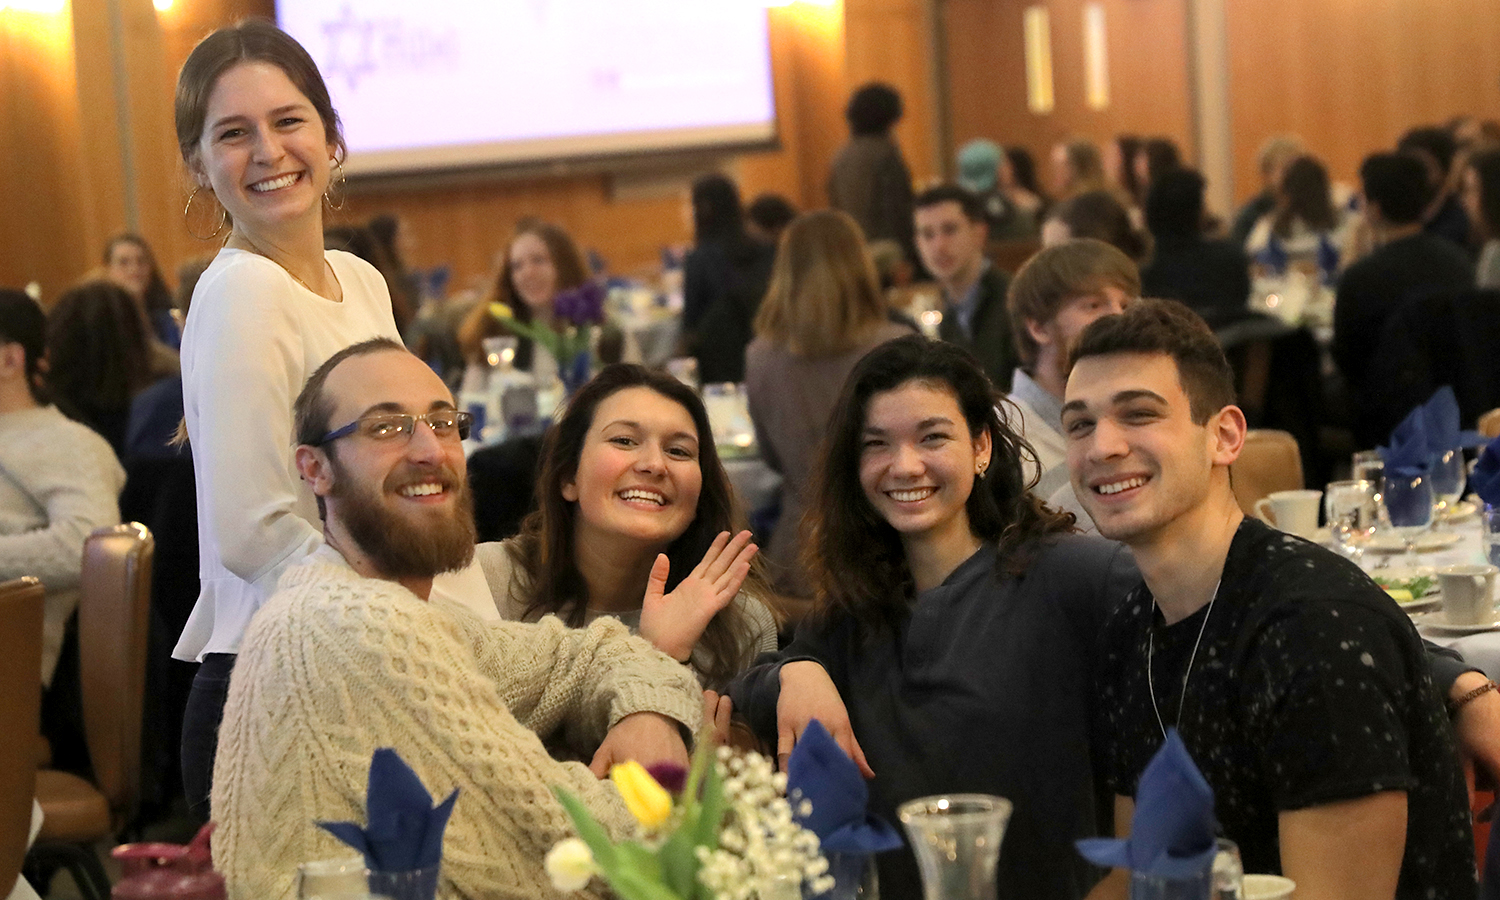 Grace Martel '18, Micah Lynch '18, Riley D'Alba '21, Eleanor Freed '21 and Zach Hoffman '18 gather for a photo during HWS Shabbat.